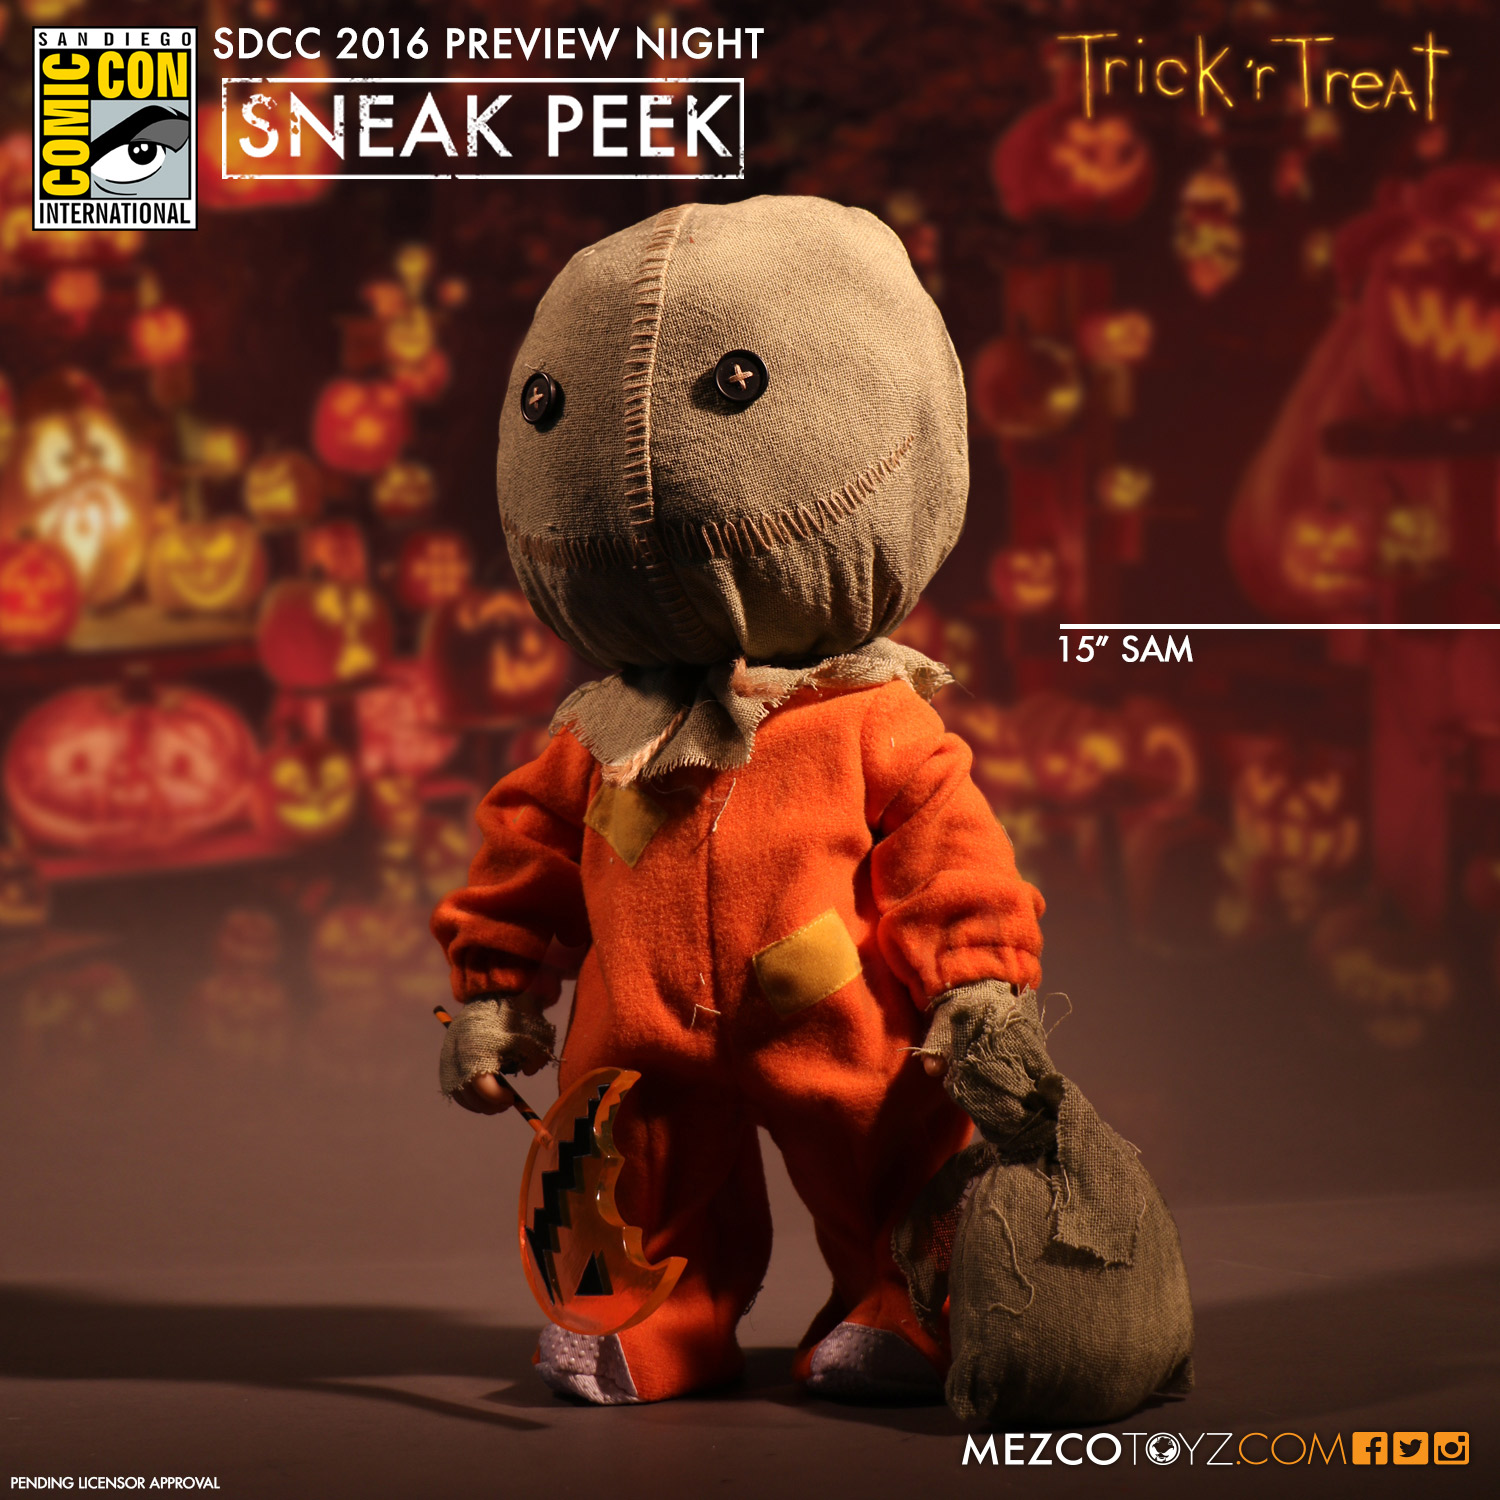 SDCC - Trick 'r Treat Sam by Mezco